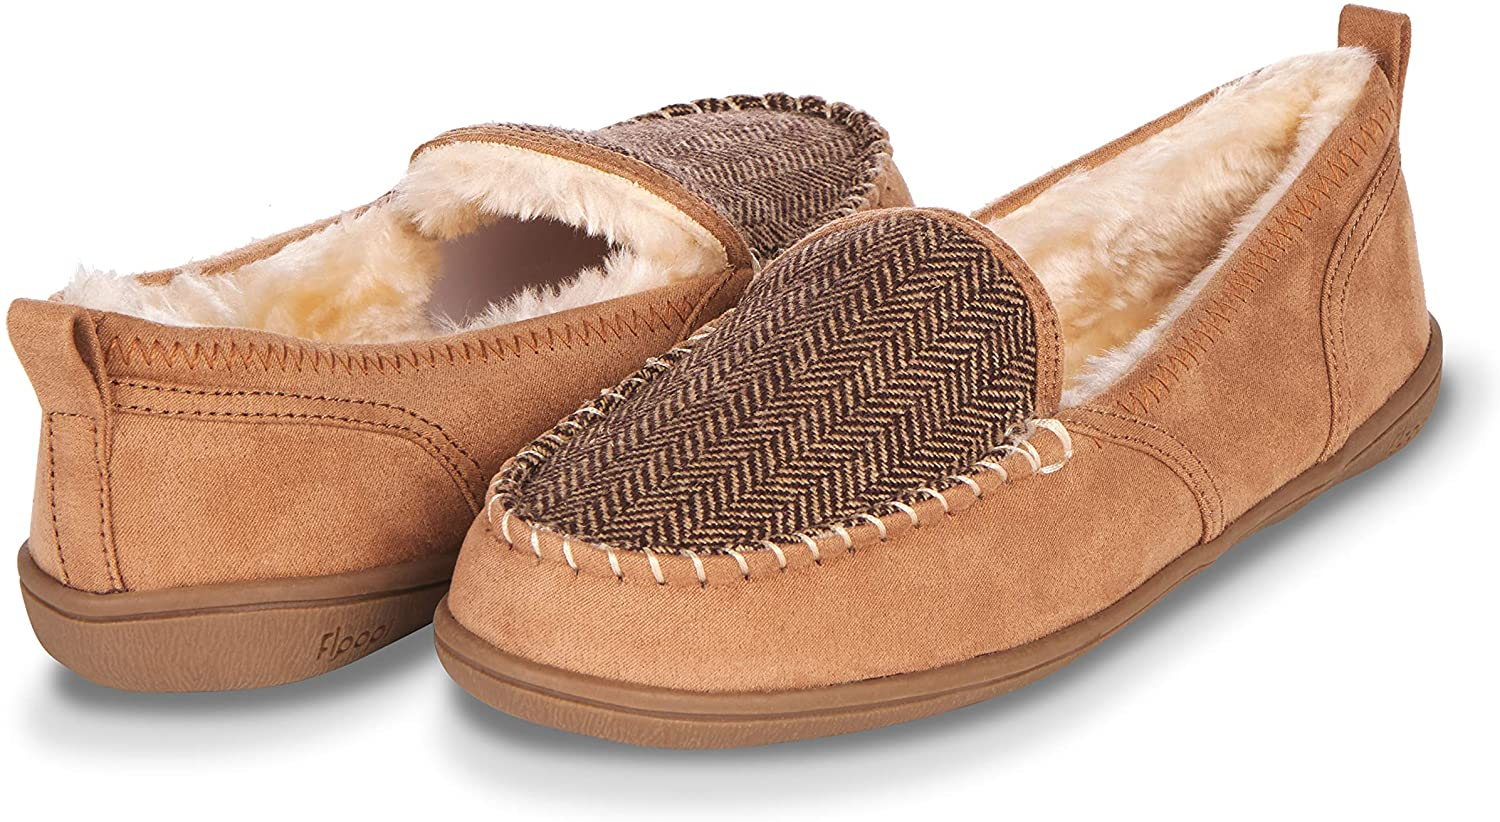 Floopi Moccasin Slippers for Women- Cozy Indoor-Outdoor Home-Bedroom Slip Ons- Micro Suede Exterior, Memory Foam Sole, Hard Rubber Outsole, Faux Fur Lining